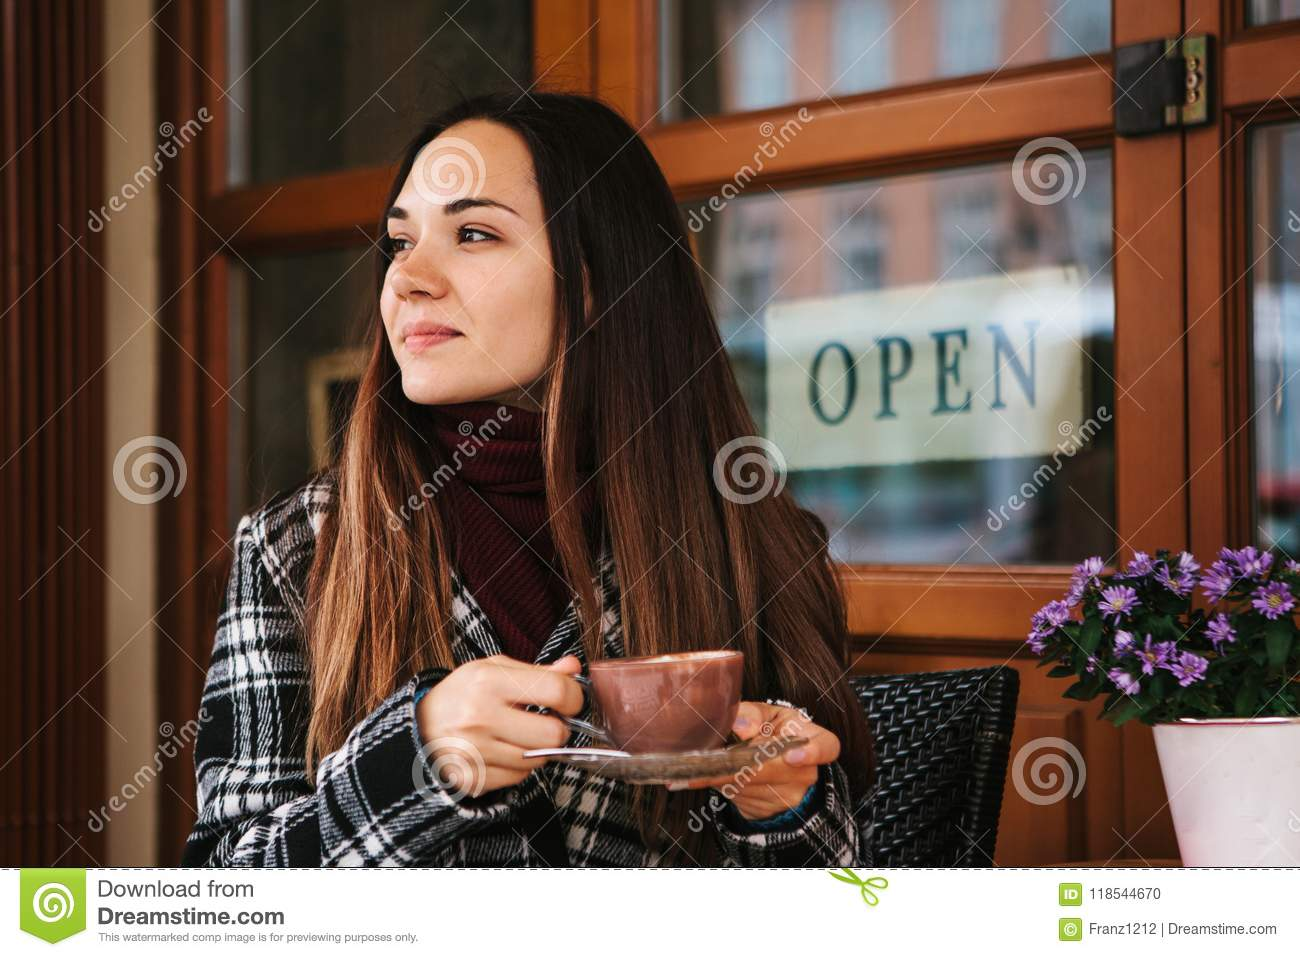 Young Beautiful Girl Drinks Coffee Or Hot Chocolate In A Street Cafe